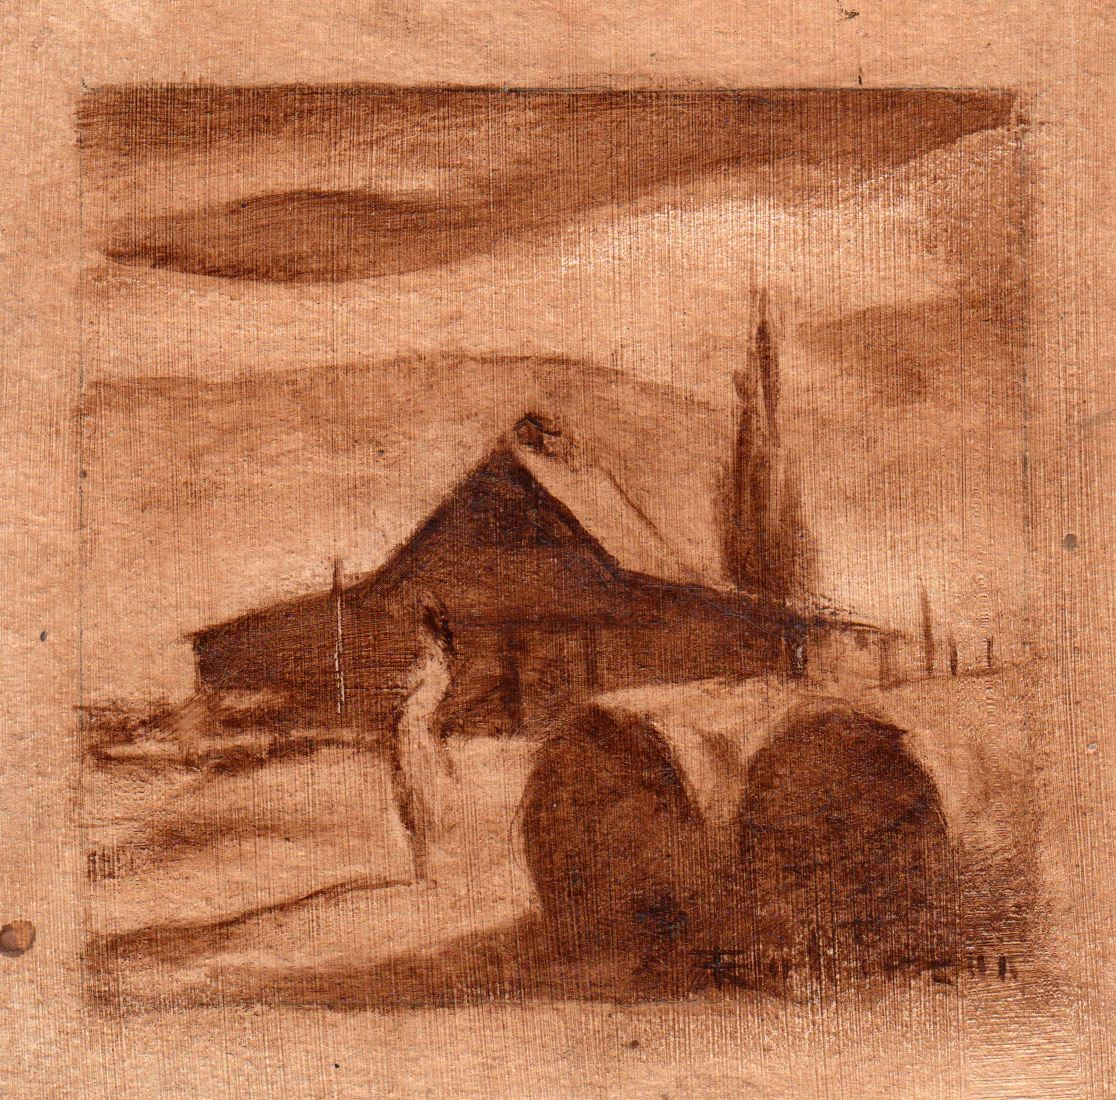 Woman and Barns (study) (2015) by Daniel Robinson